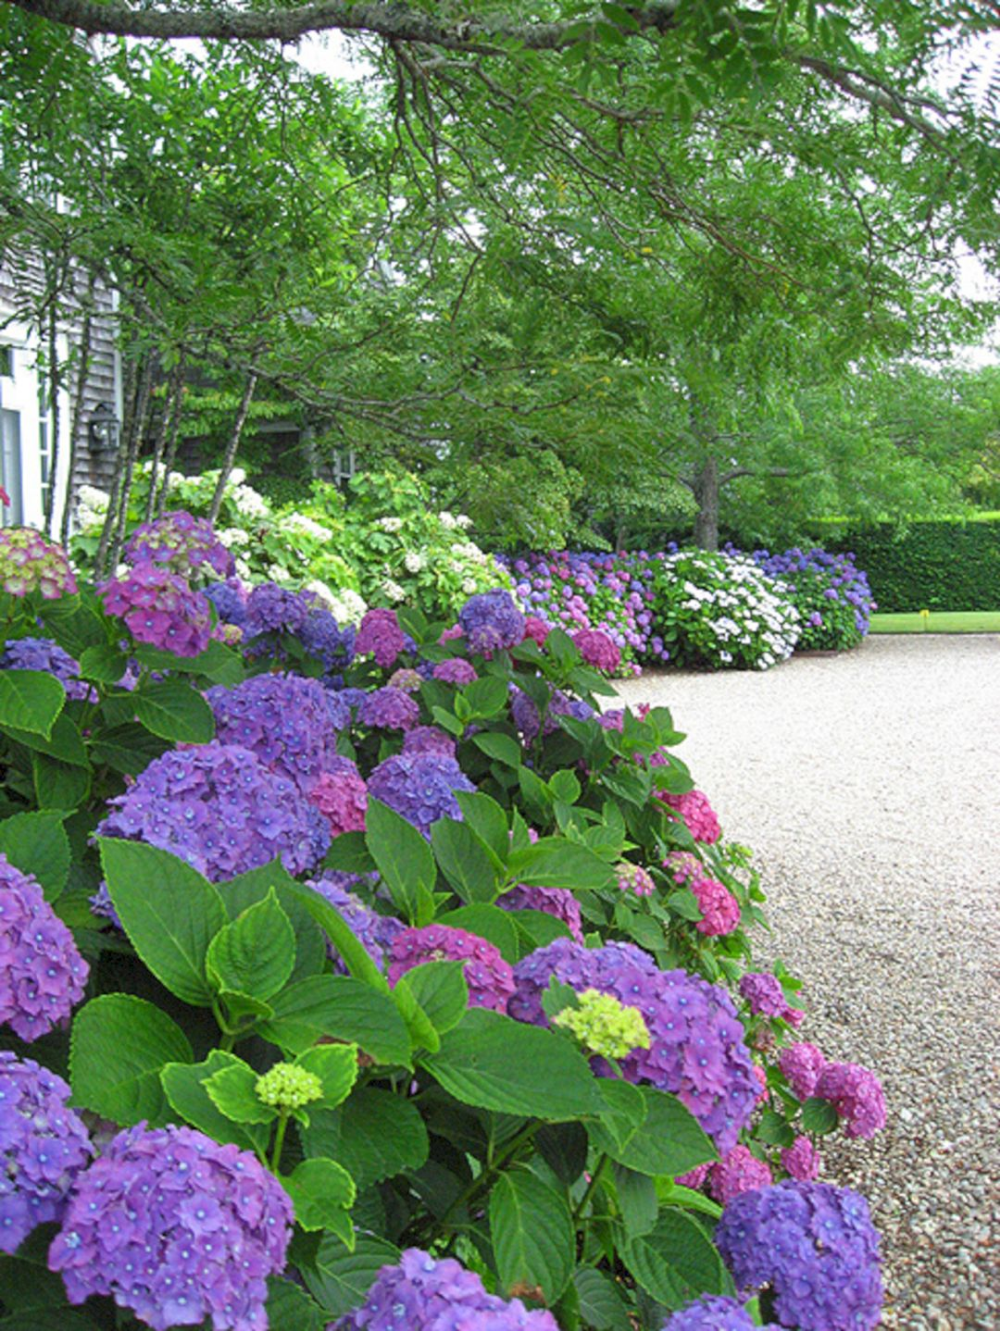 50 Most Beautiful Hydrangeas Landscaping Ideas To Inspire You 040 Decoor High Chinese Aid Miscanthus Limits The In 2020 French Country Garden Hydrangea Landscaping